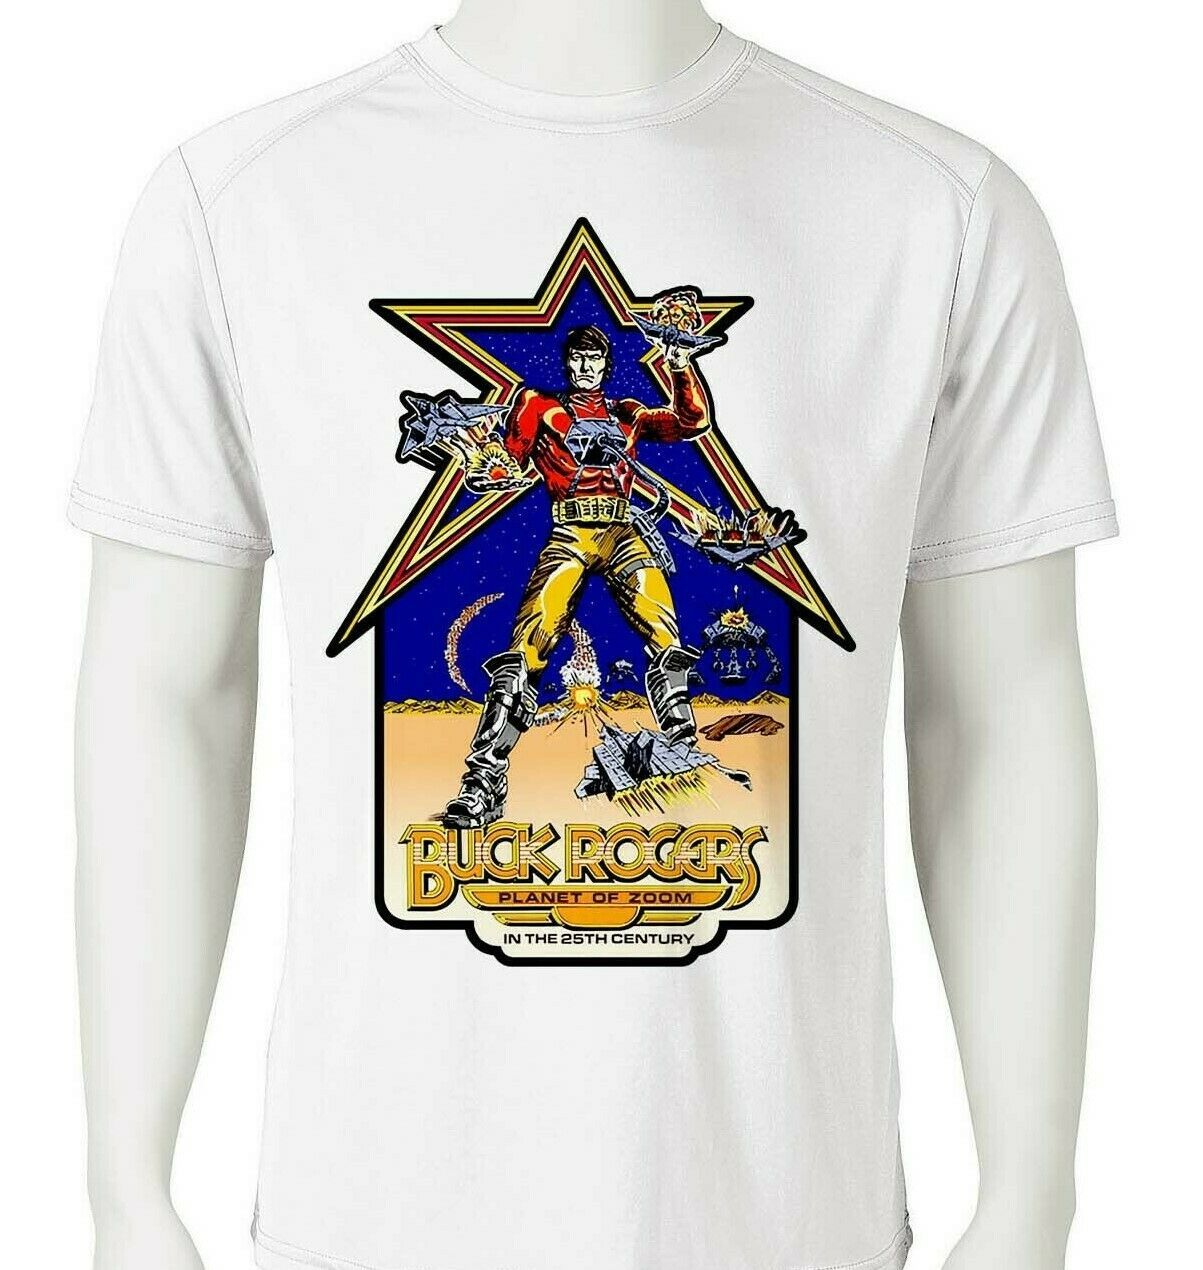 Buck rogers tee retro comics dri fit for sale online graphic tshirt